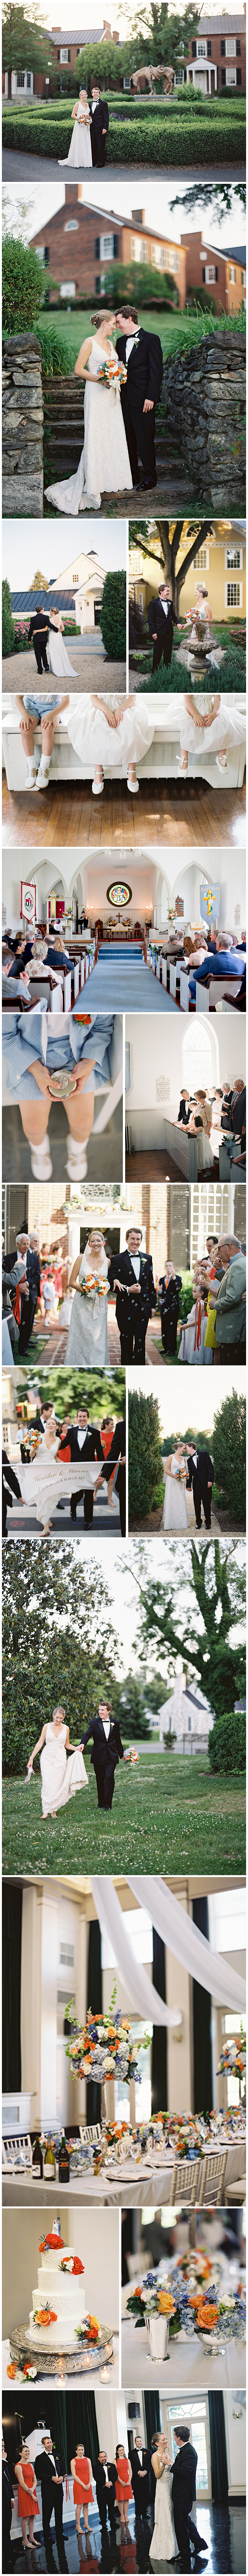 With lovely terraces and sweet little nooks    for gorgeous wedding day photo opportunities, Middleburg Community Center's historic property offers a lovely opportunity for beautiful and bright events like this one.  Bold oranges and endearing blues created a cheerful palette.  Elevated designs remained loose and airy atop elongated silver stands and flourishing compotes spread brightly across festive tabletops. Images by Anne Robert.